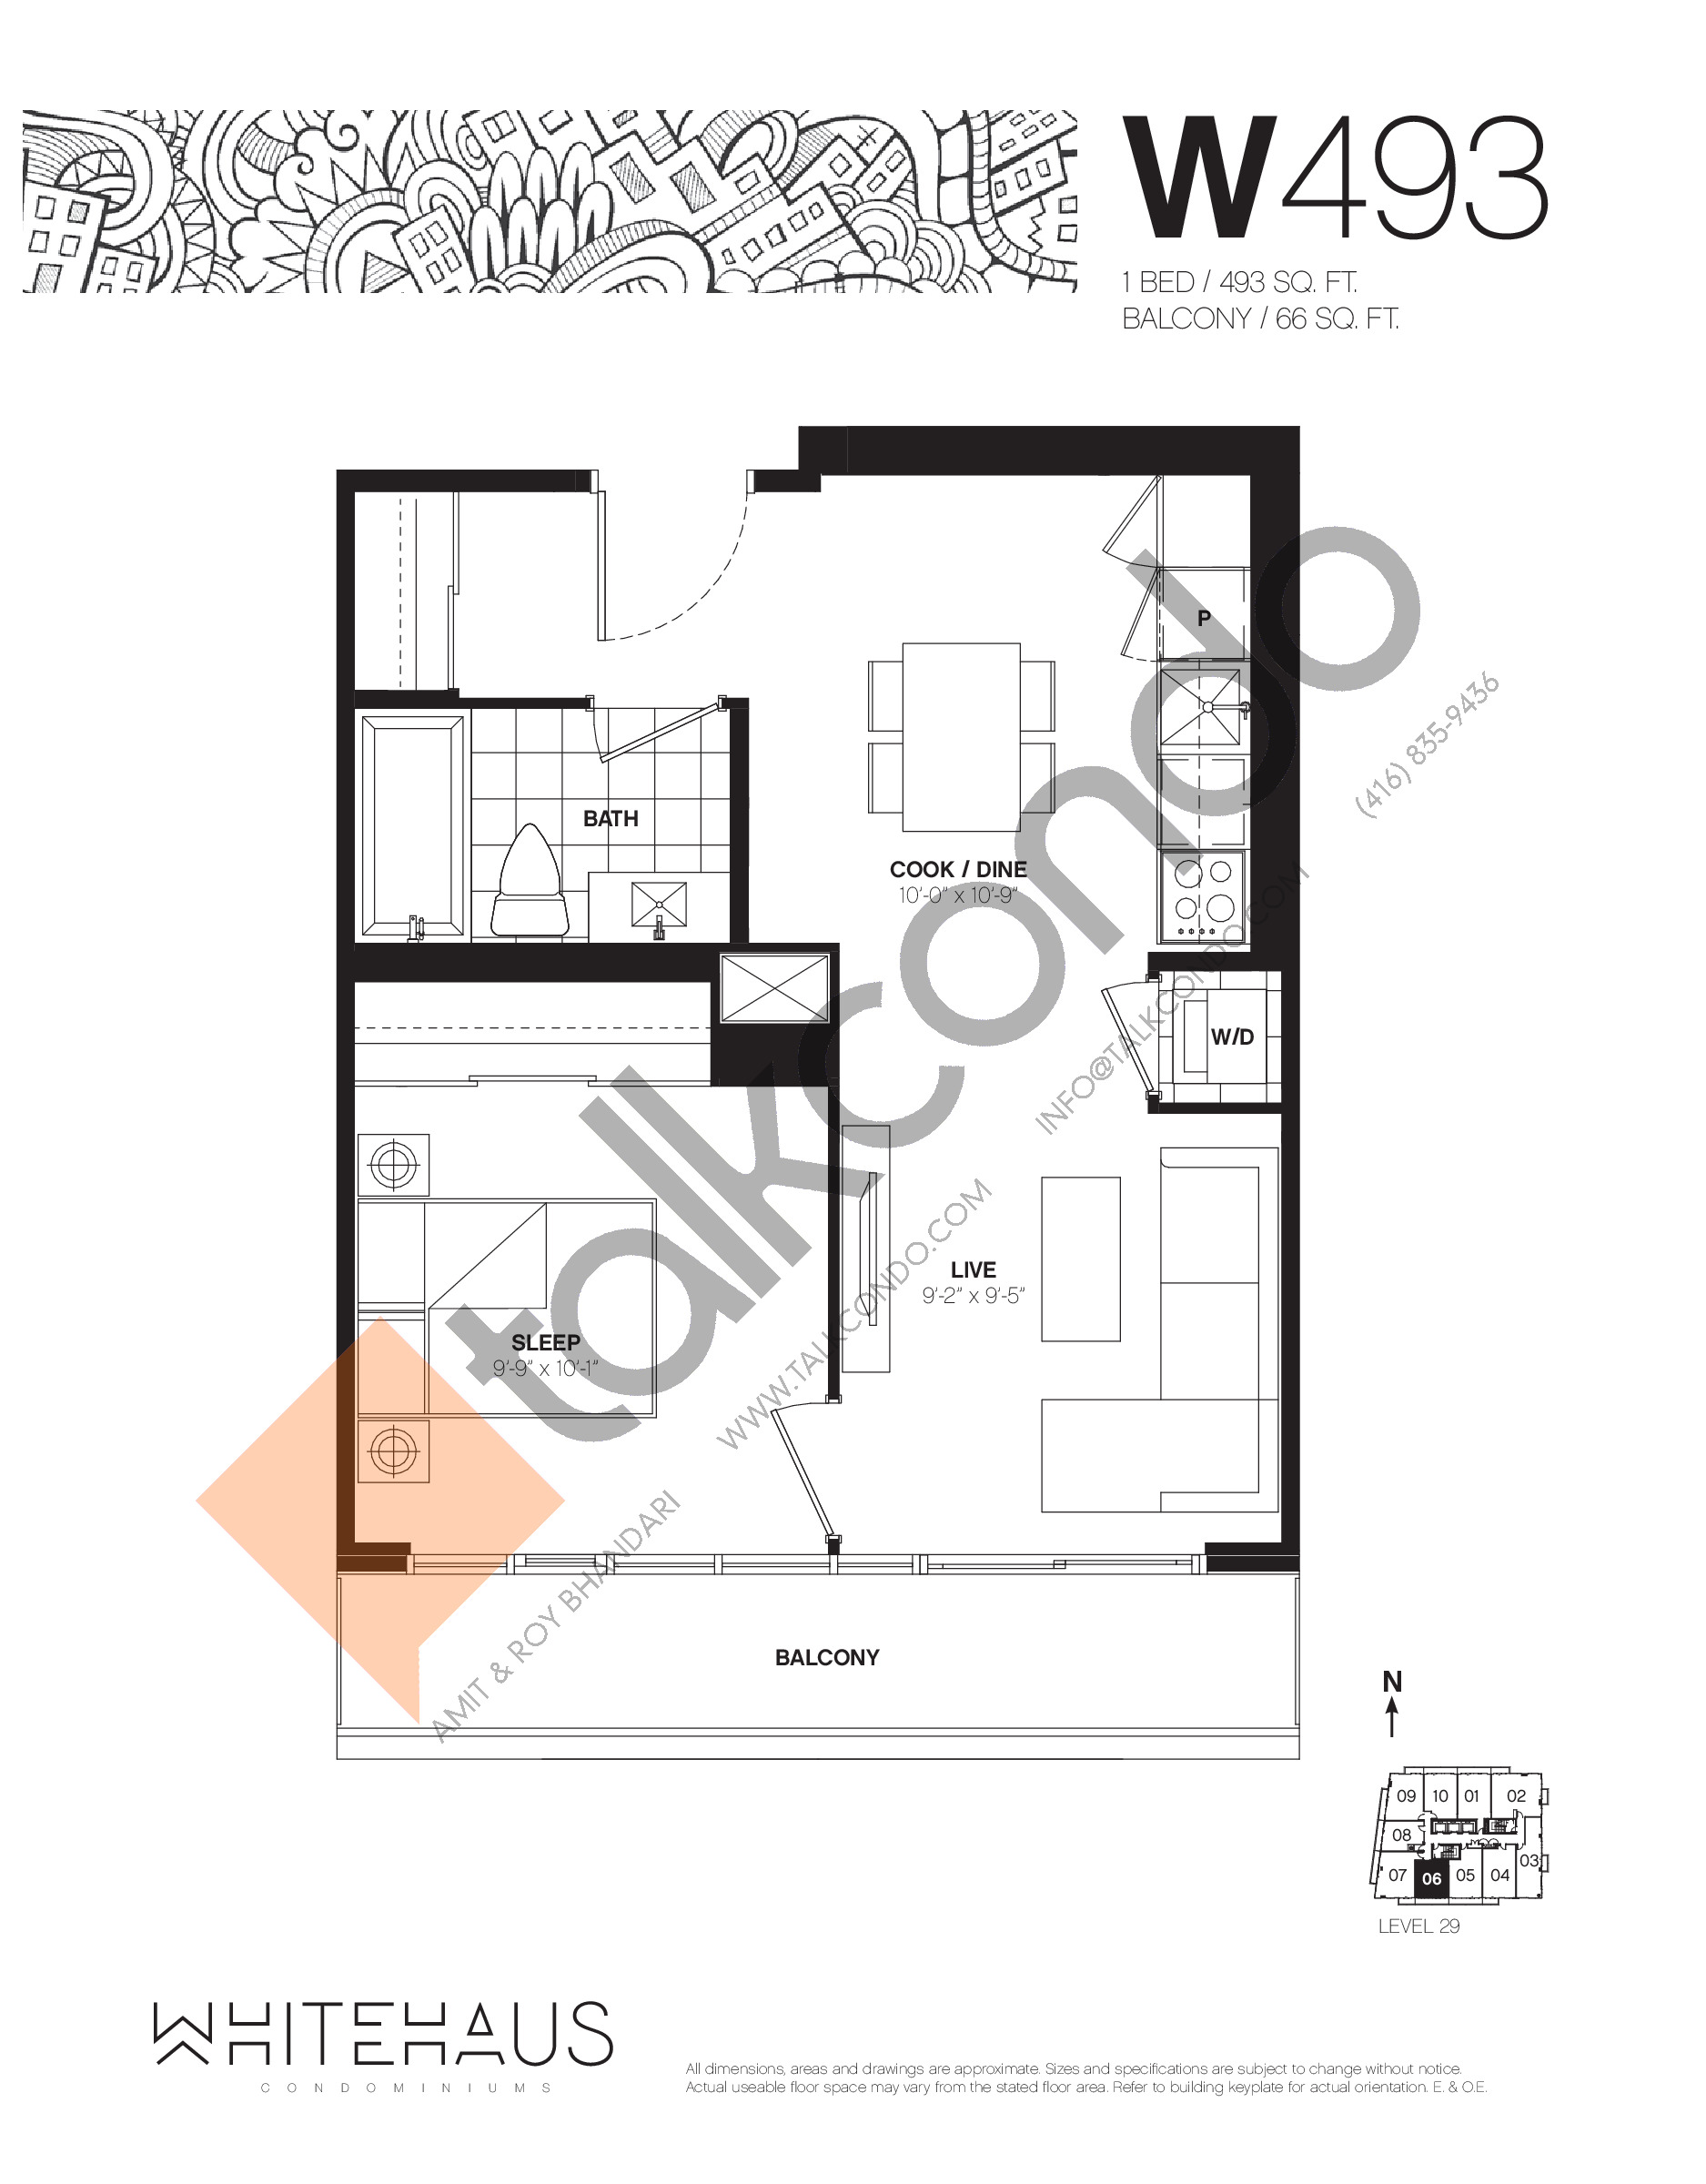 W493 Floor Plan at Whitehaus Condos - 493 sq.ft